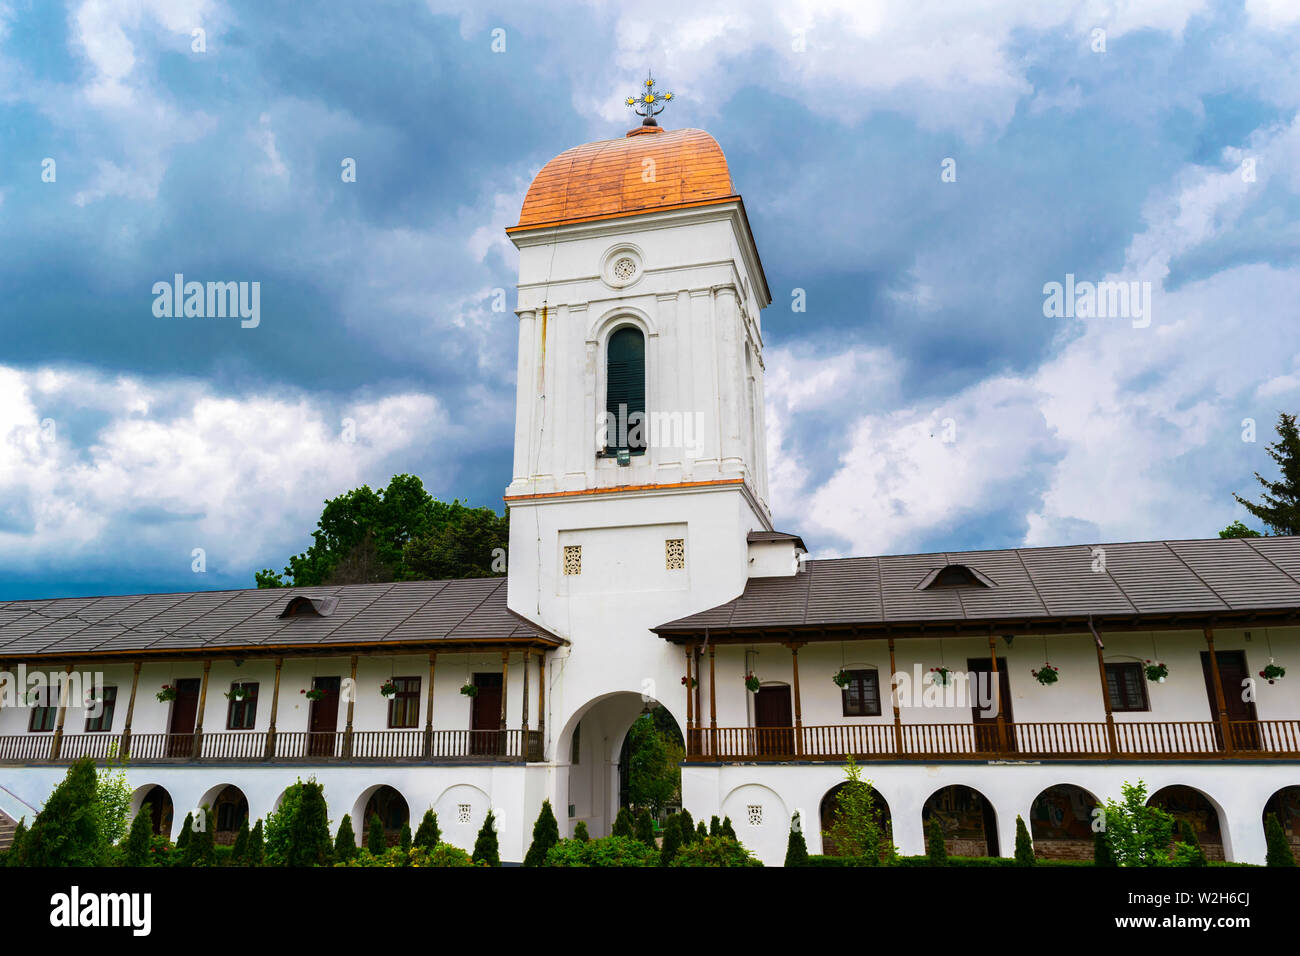 Ilfov, near Bucharest, Romania - April 30, 2019: Entrance to orthodox Cernica Monastery courtyard showing the bell tower building. Stock Photo